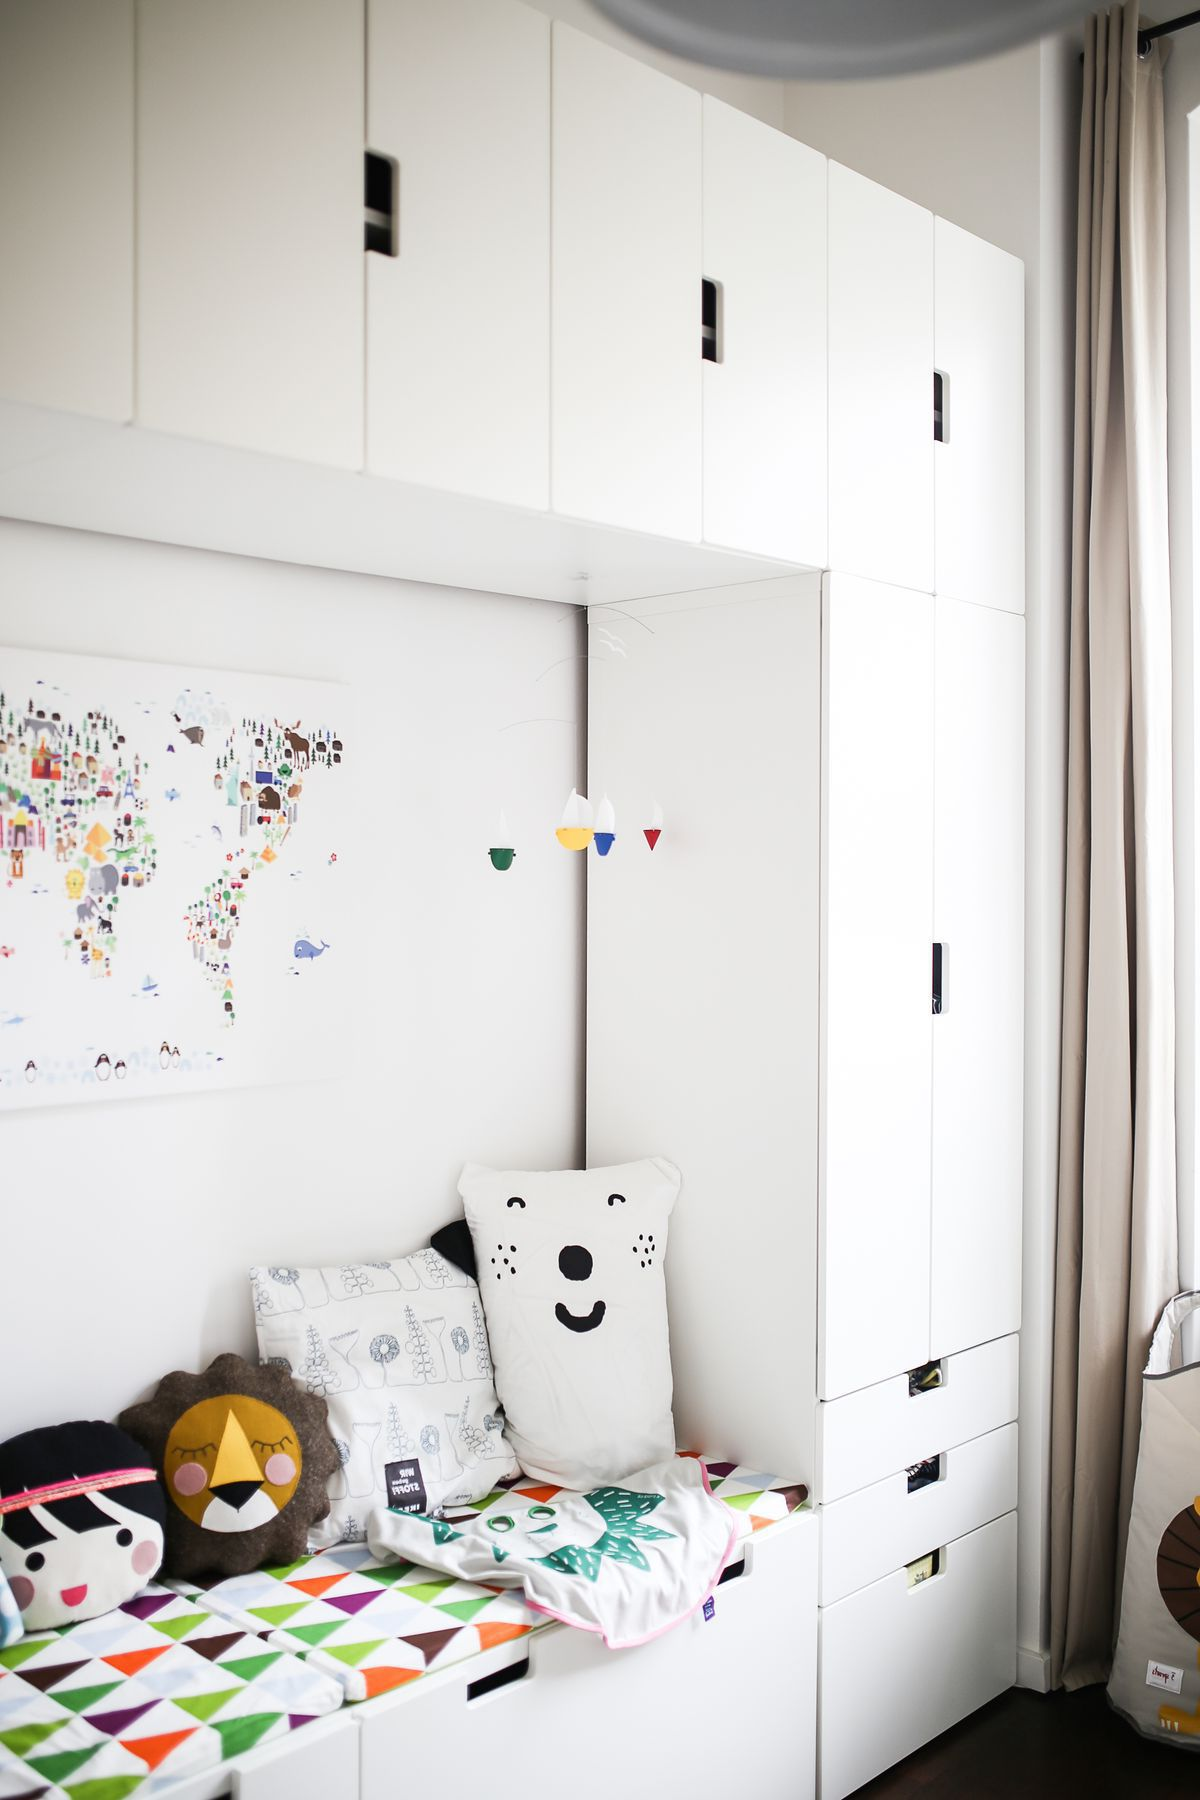 couch und speicherorganisation im kinderzimmer mit hilfe von ikea stuva serie. Black Bedroom Furniture Sets. Home Design Ideas